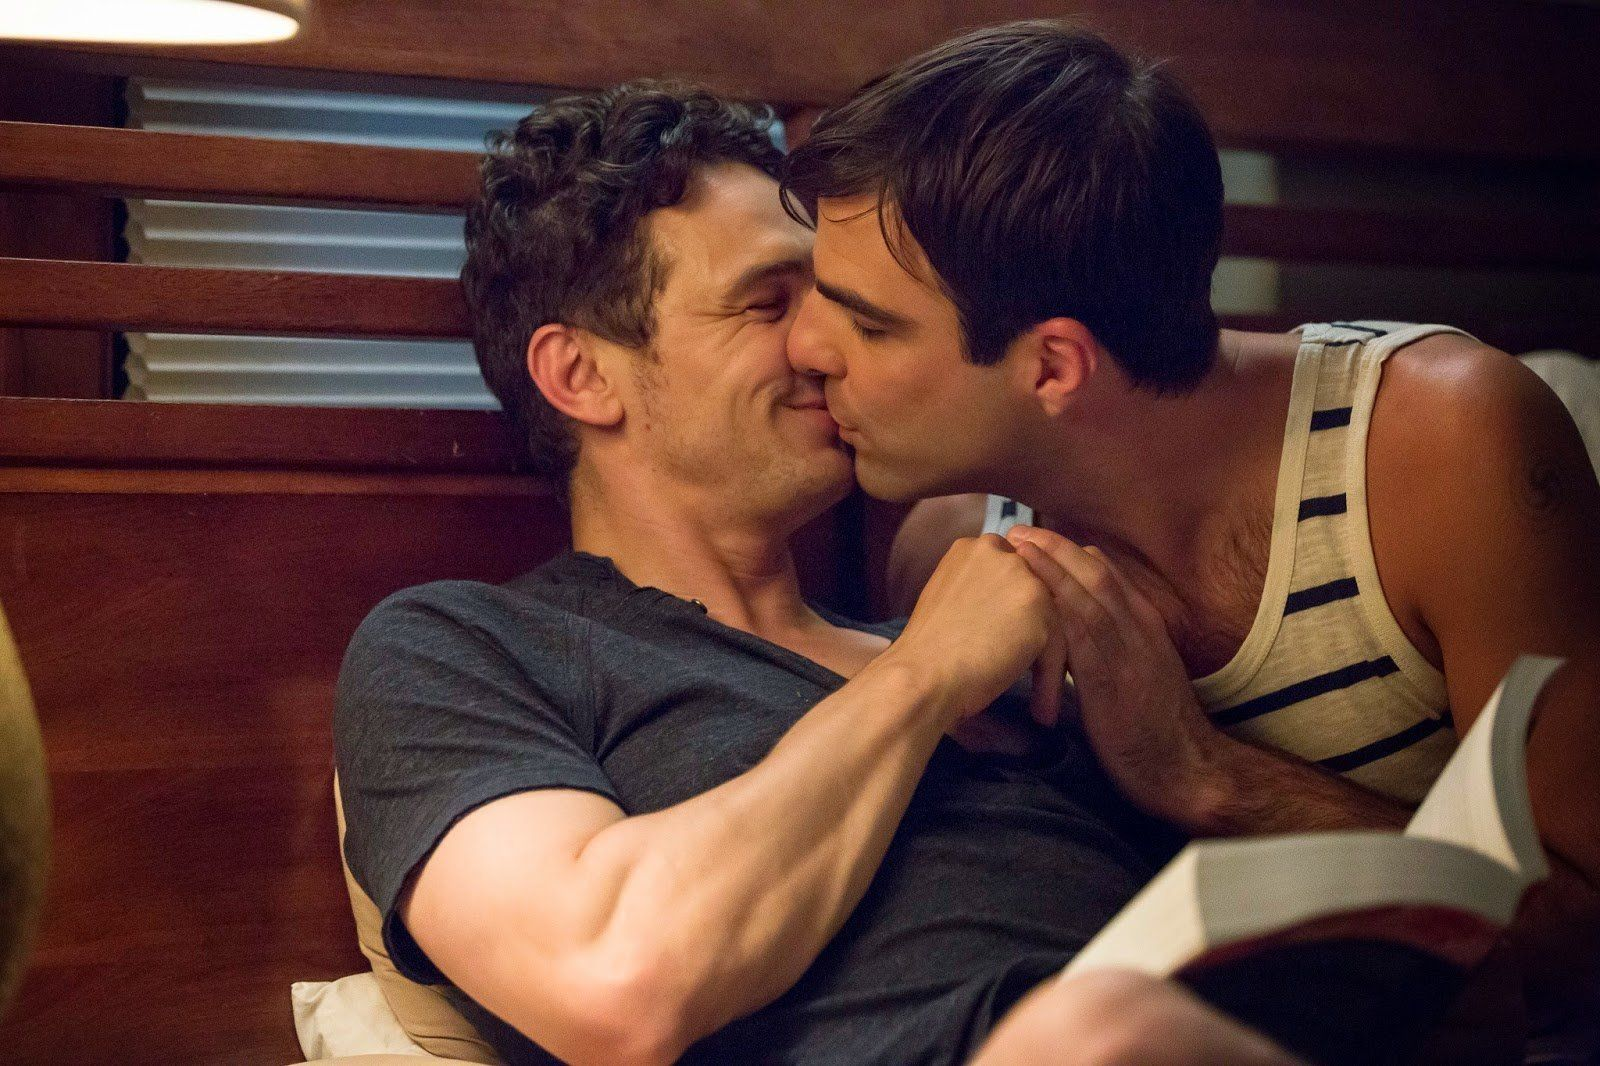 Aroused gays making out hot